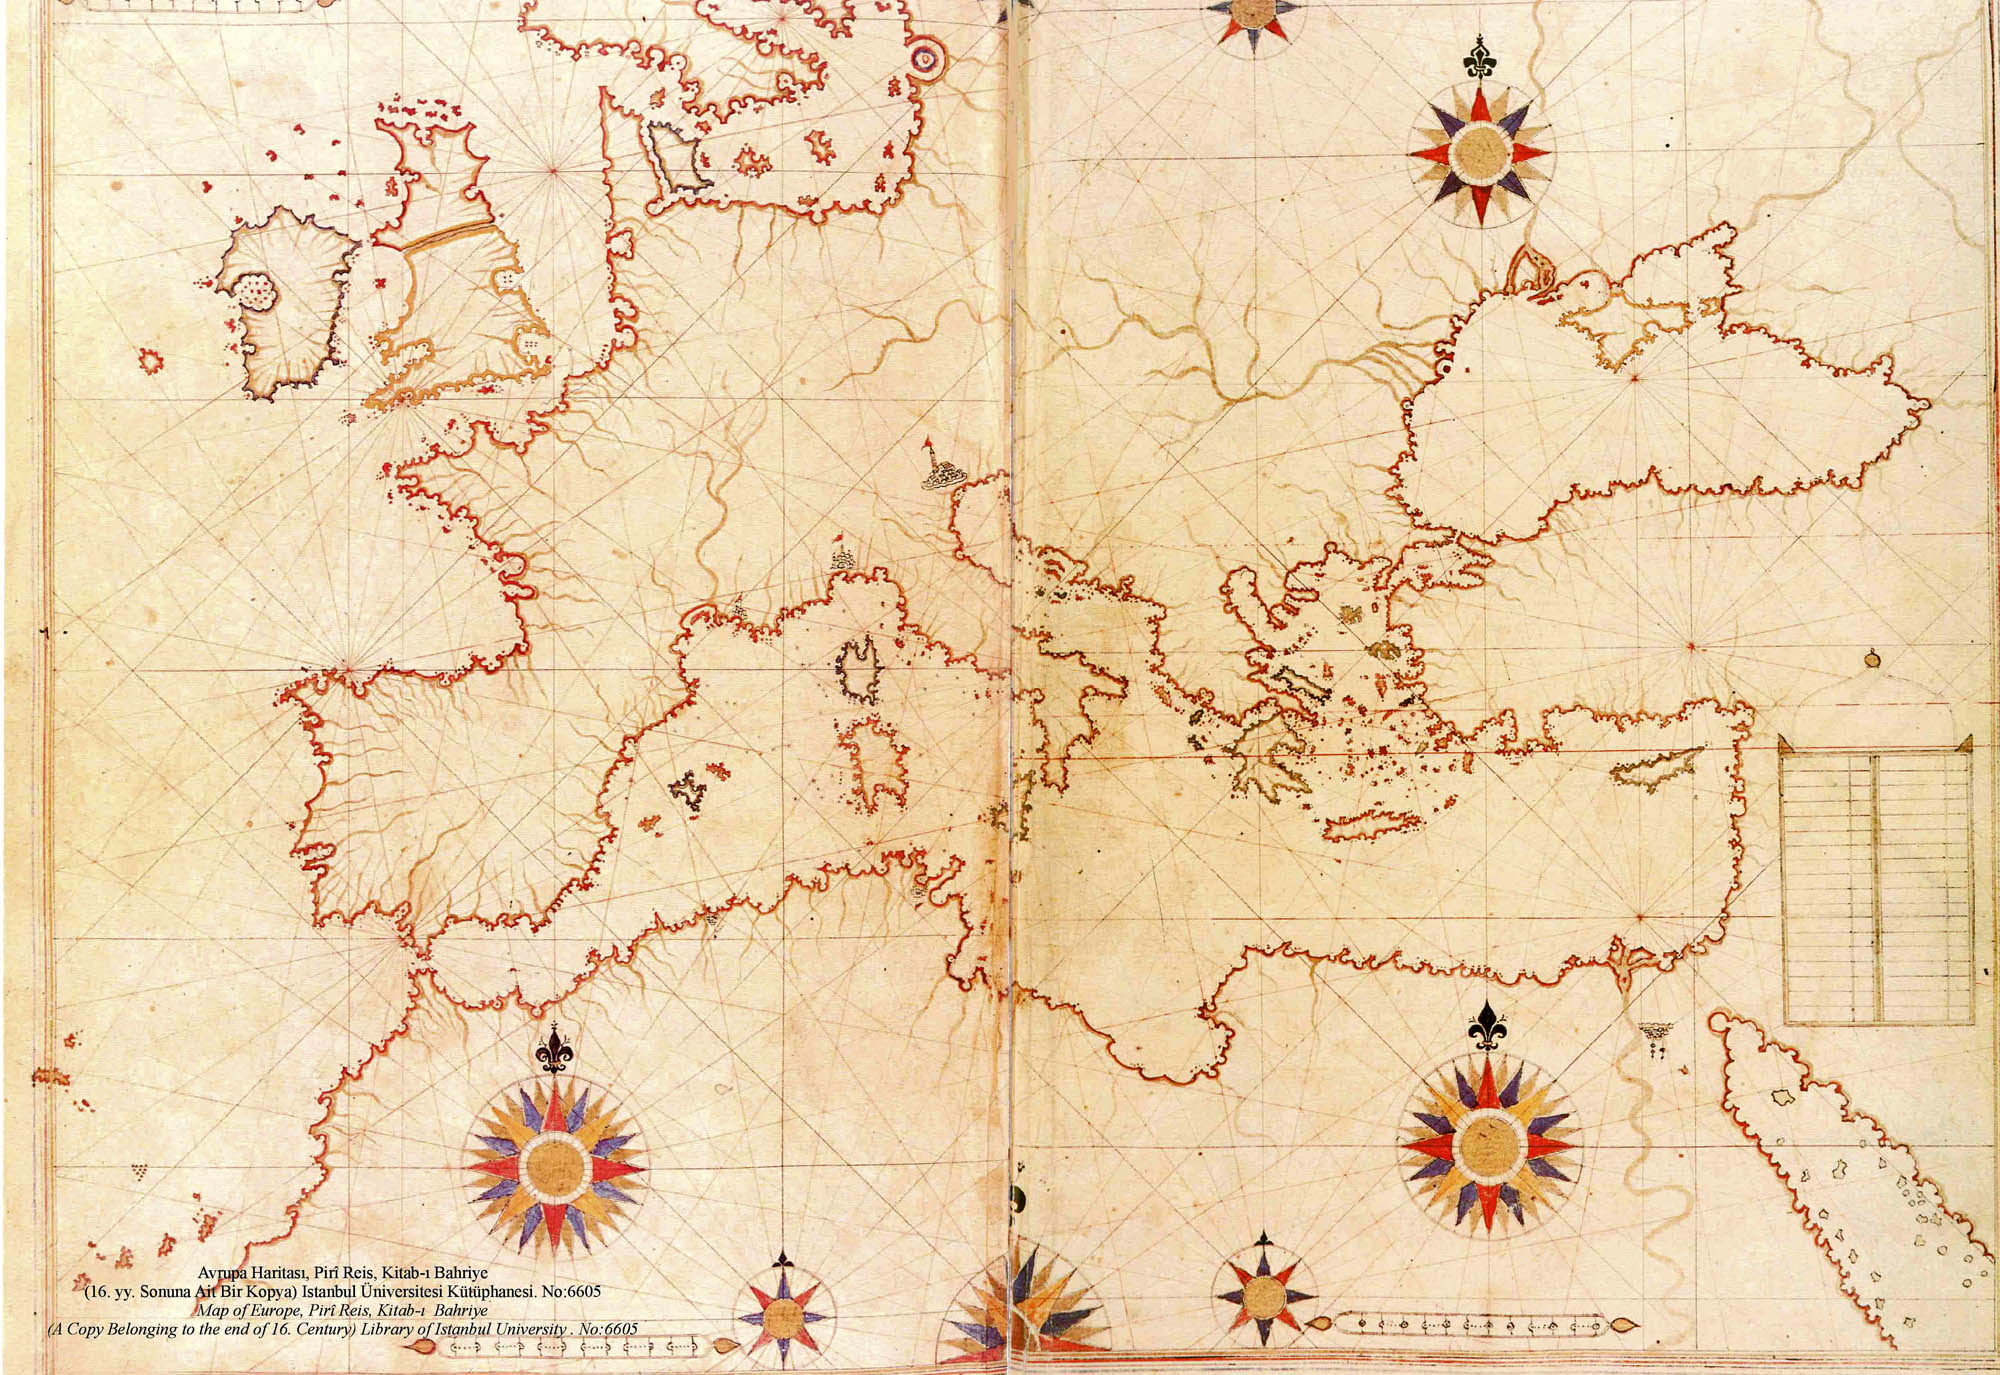 Map of Europe, the Near East and North Africa in the Kitab-ı Bahriye (Book of Navigation) of Piri Reis.